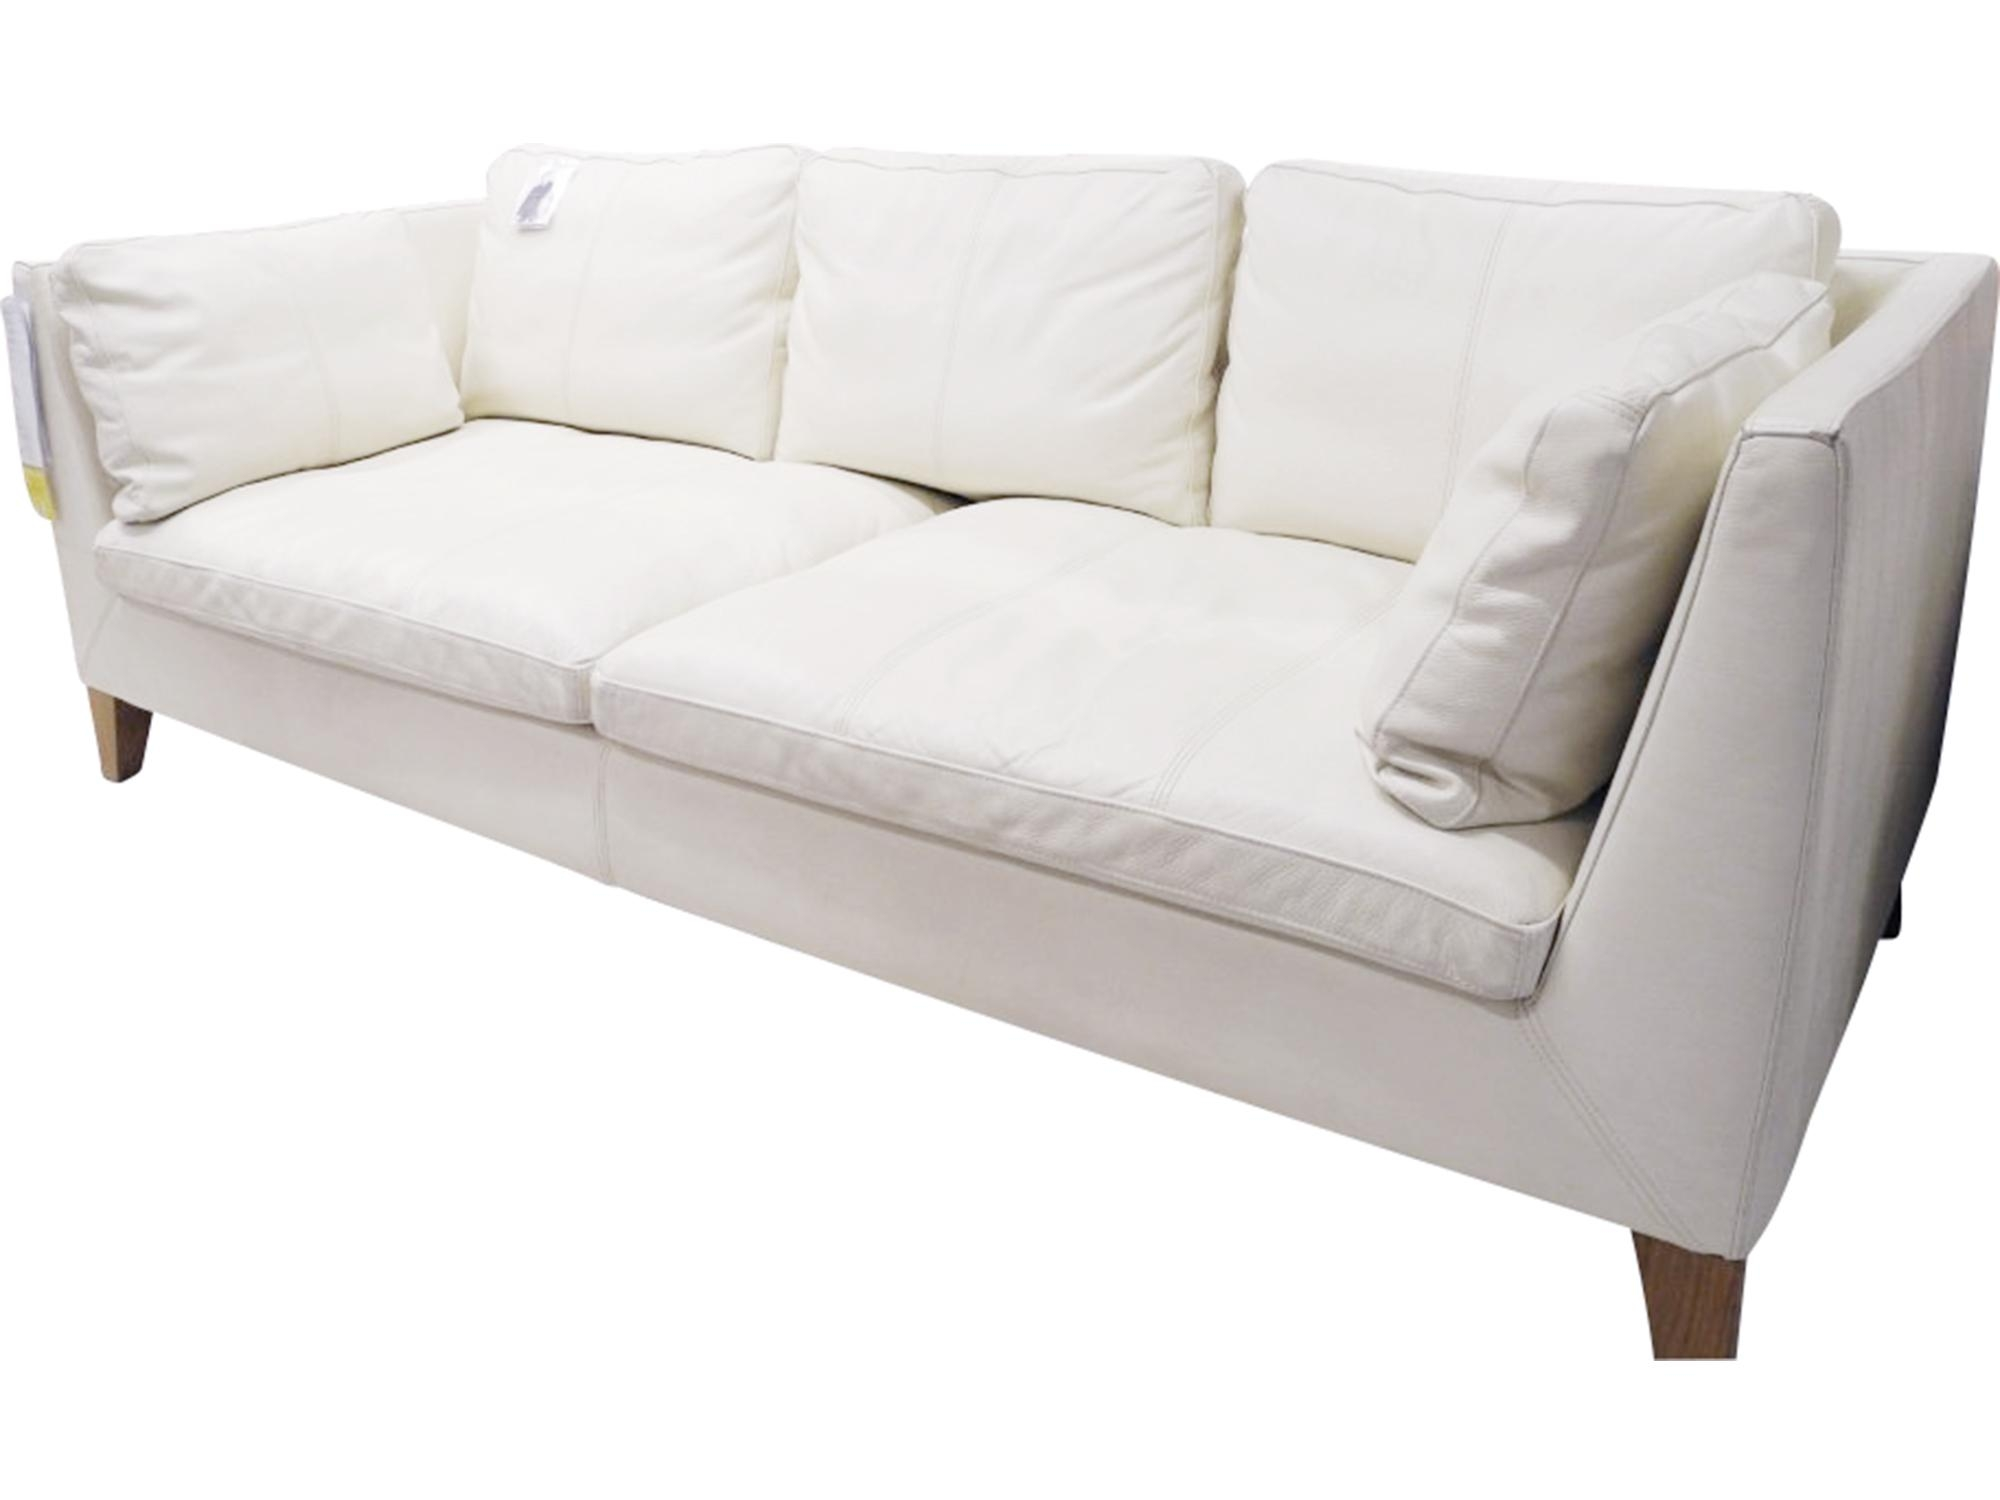 Alan White Sofa With Ideas Hd Gallery 6315 | Kengire Inside Alan White Couches (View 11 of 20)